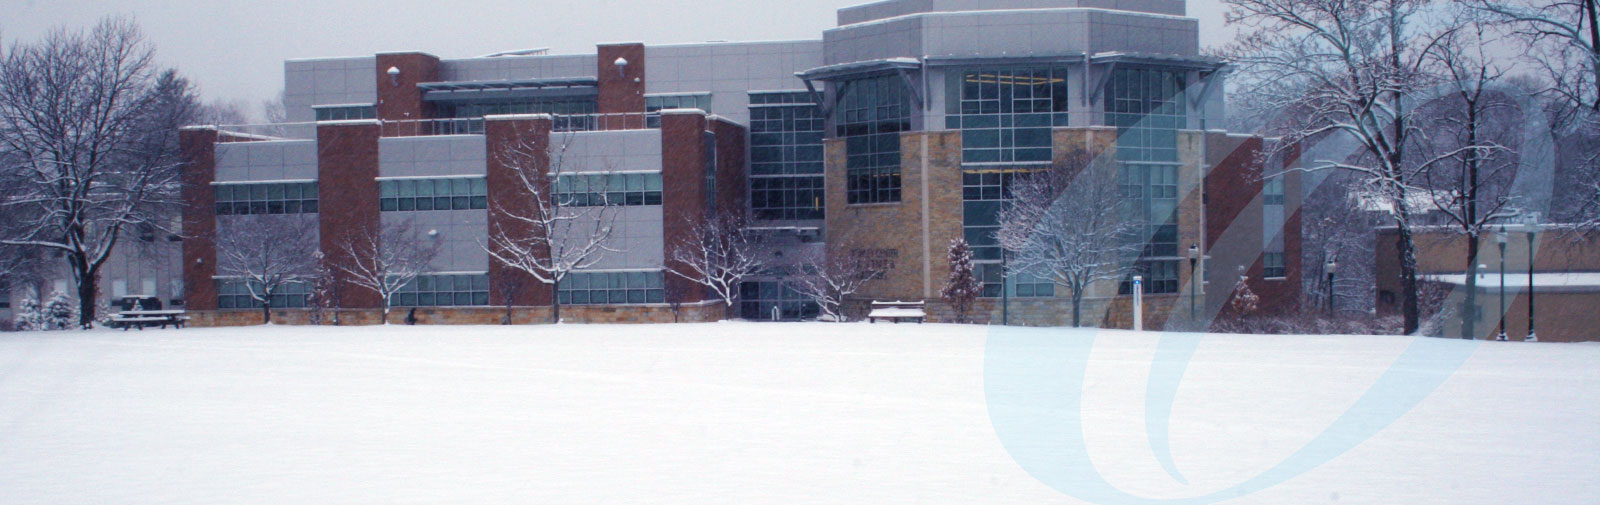 Morrison Hall in winter